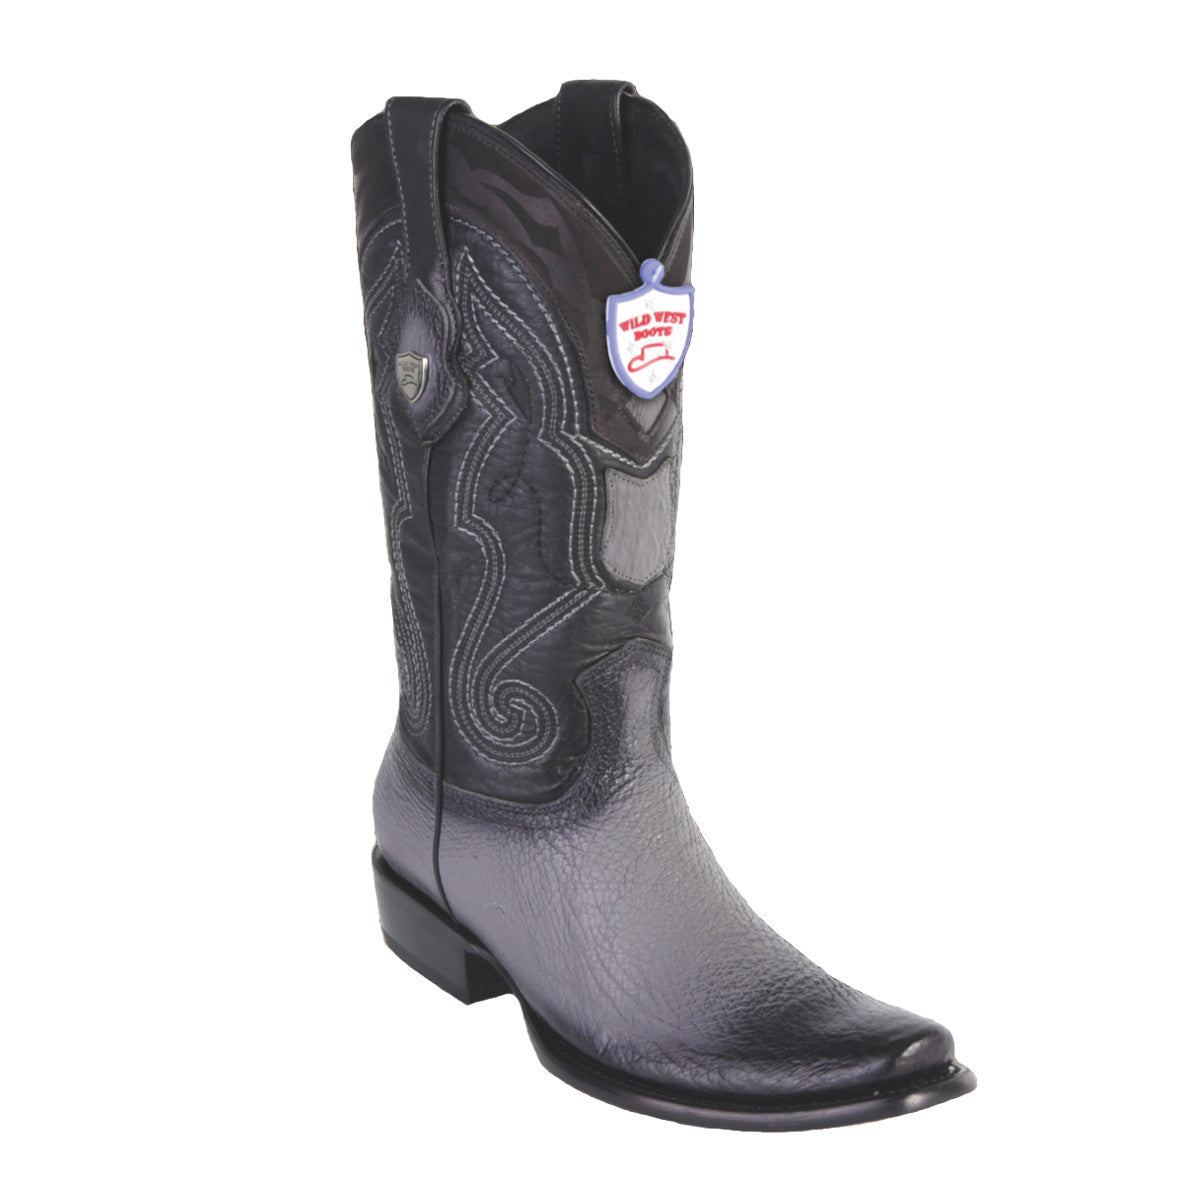 Wild West Boots H79 Dubai Boot Shark - Faded Gray